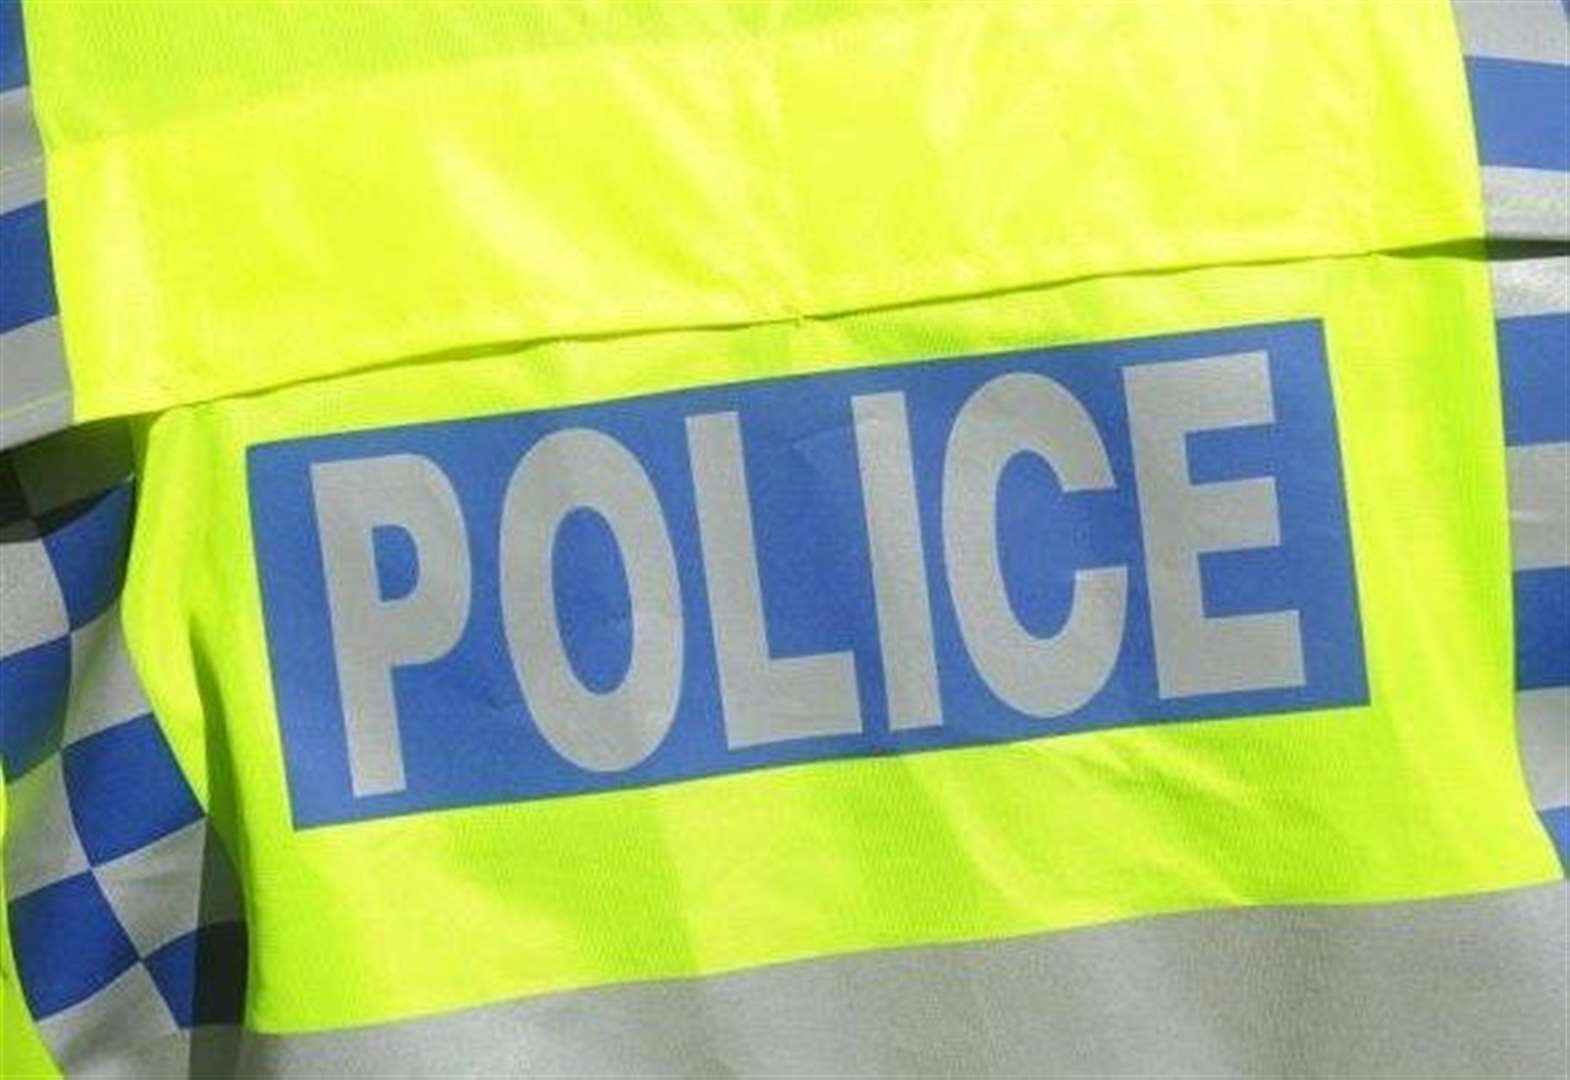 Man assaulted by three men in random attack near Grantham train station